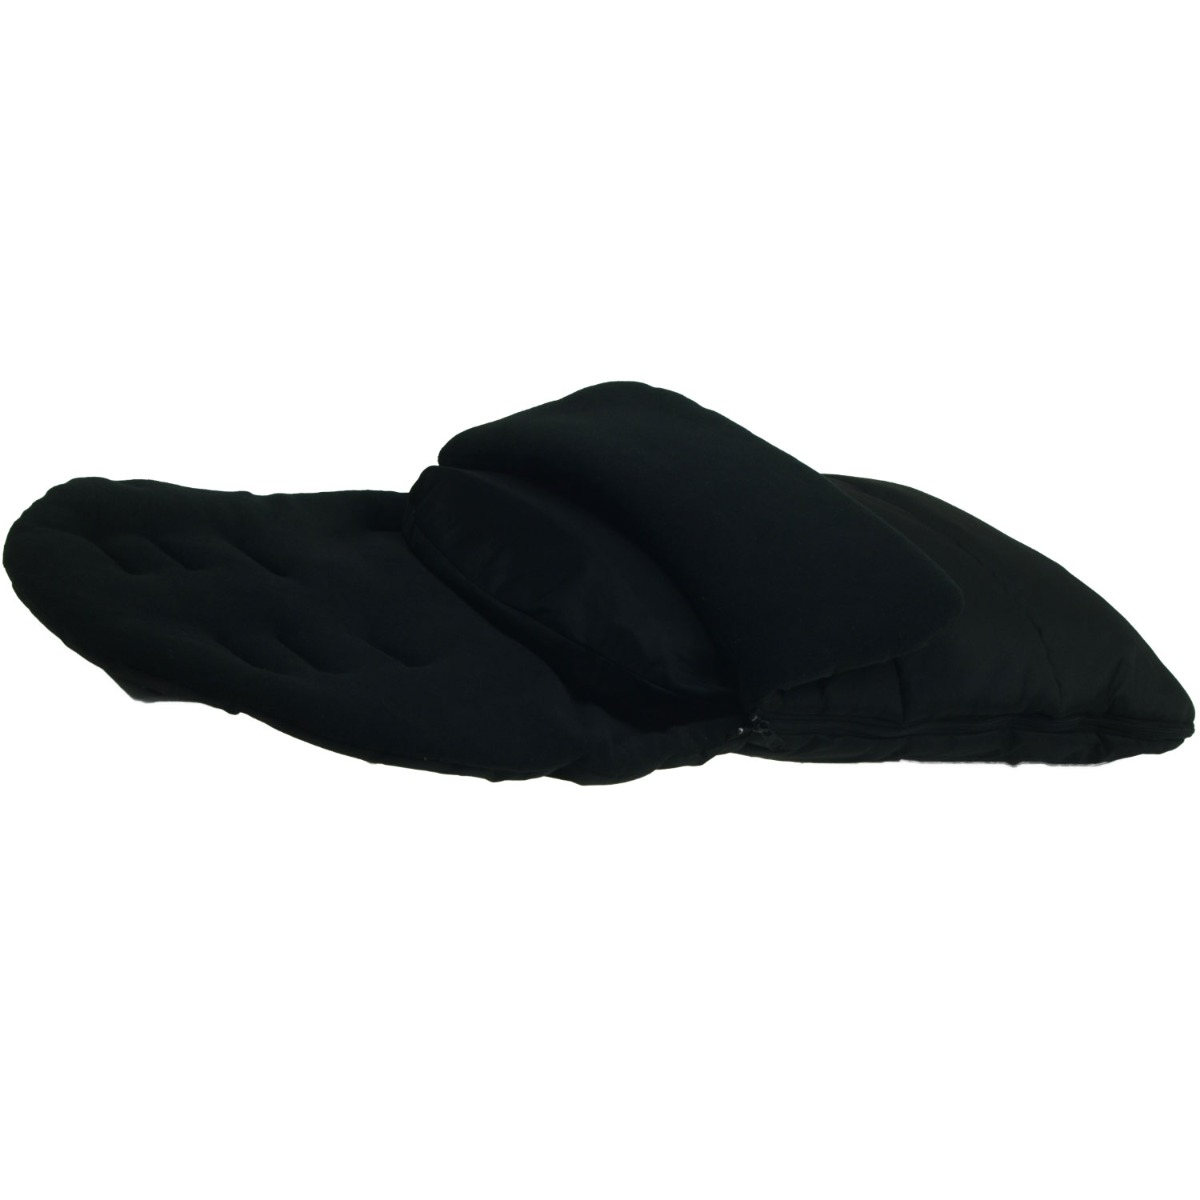 Universal-Pushchair-Footmuff-Cosytoes-Fleece-Lined-Fit-For-Stroller-Prams-Buggy thumbnail 4